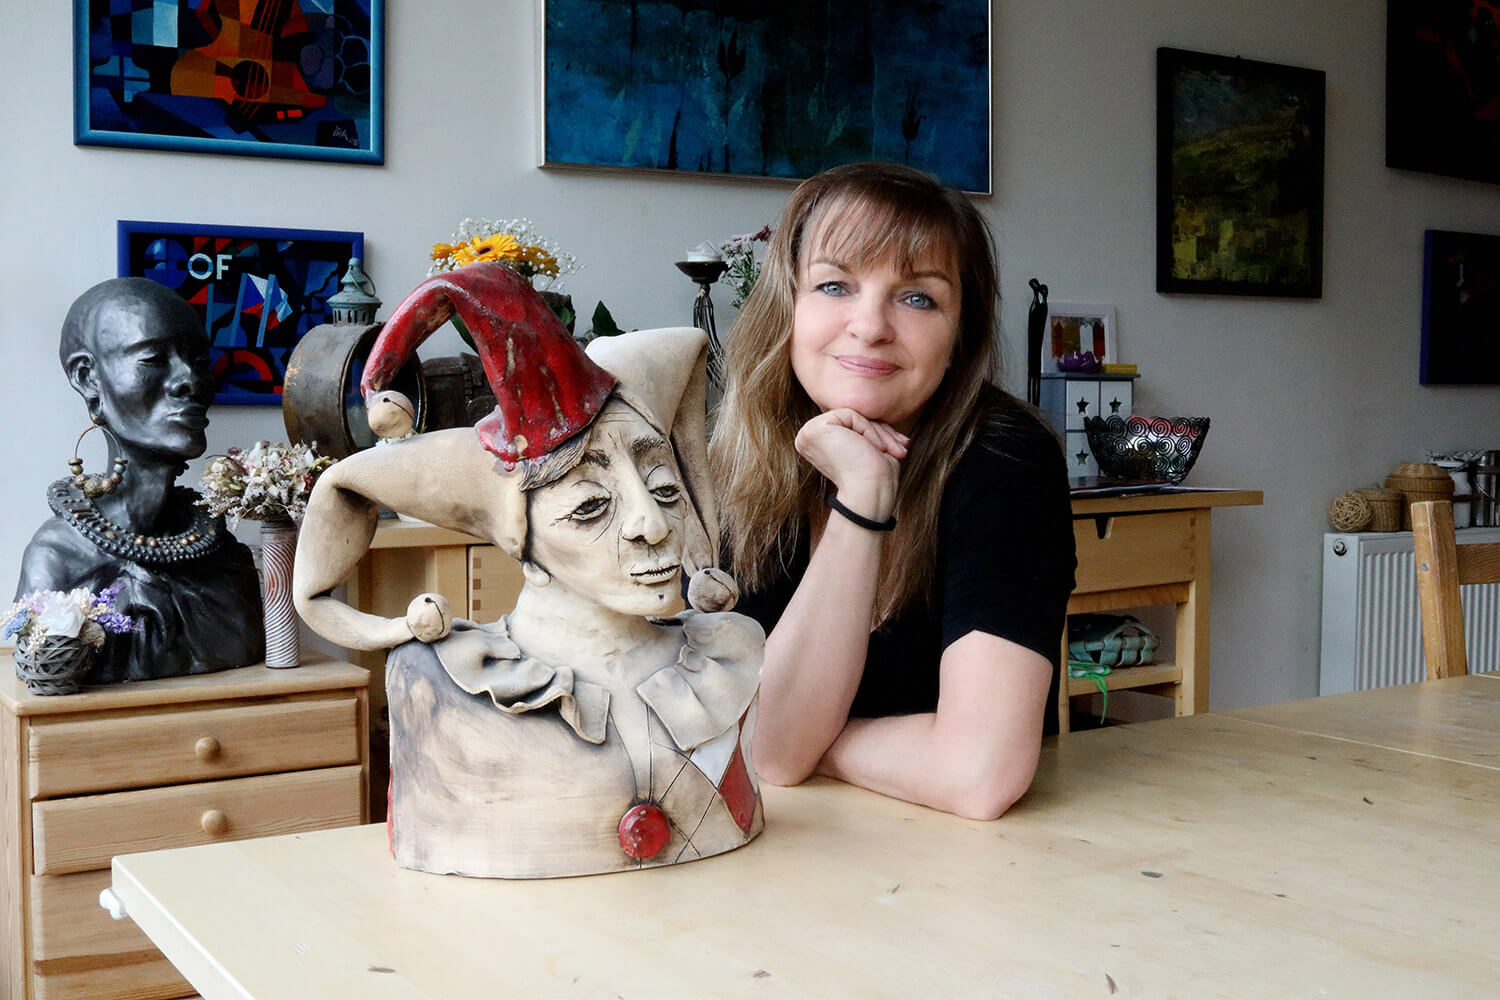 female business portrait with ceramic statue